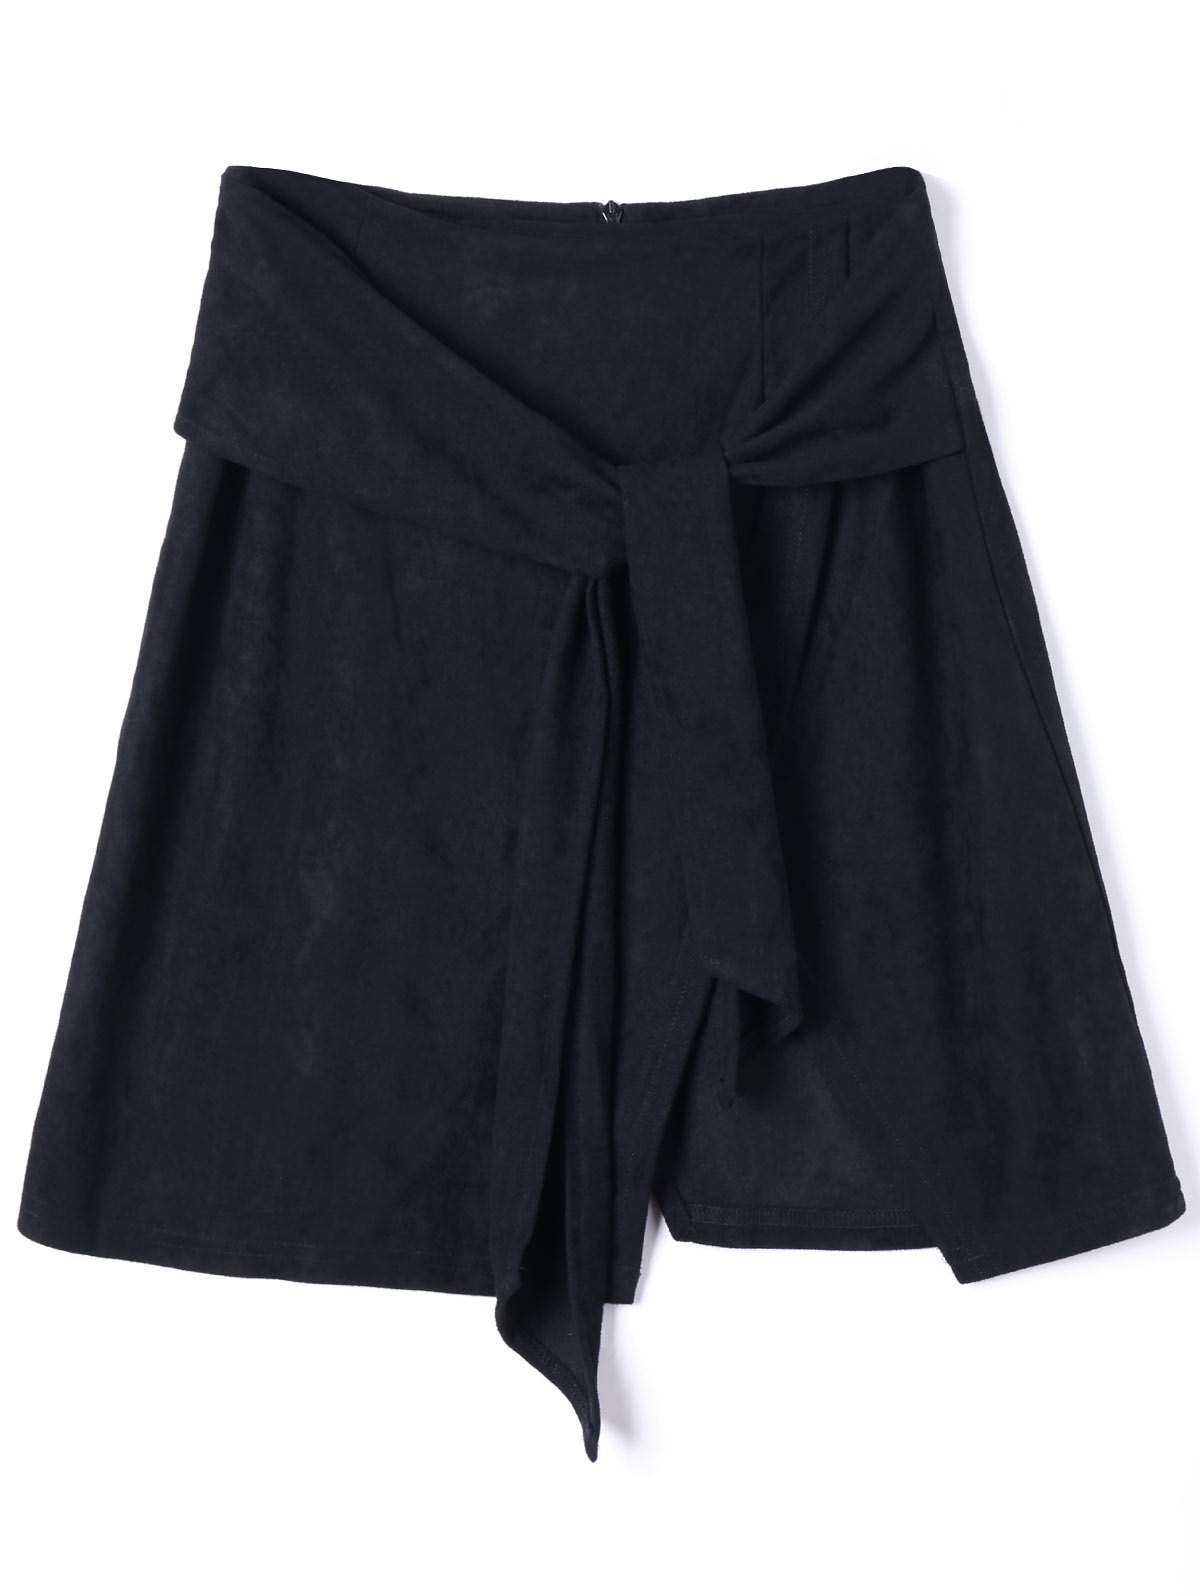 Slit Tie Front Mini Skirt - BLACK M